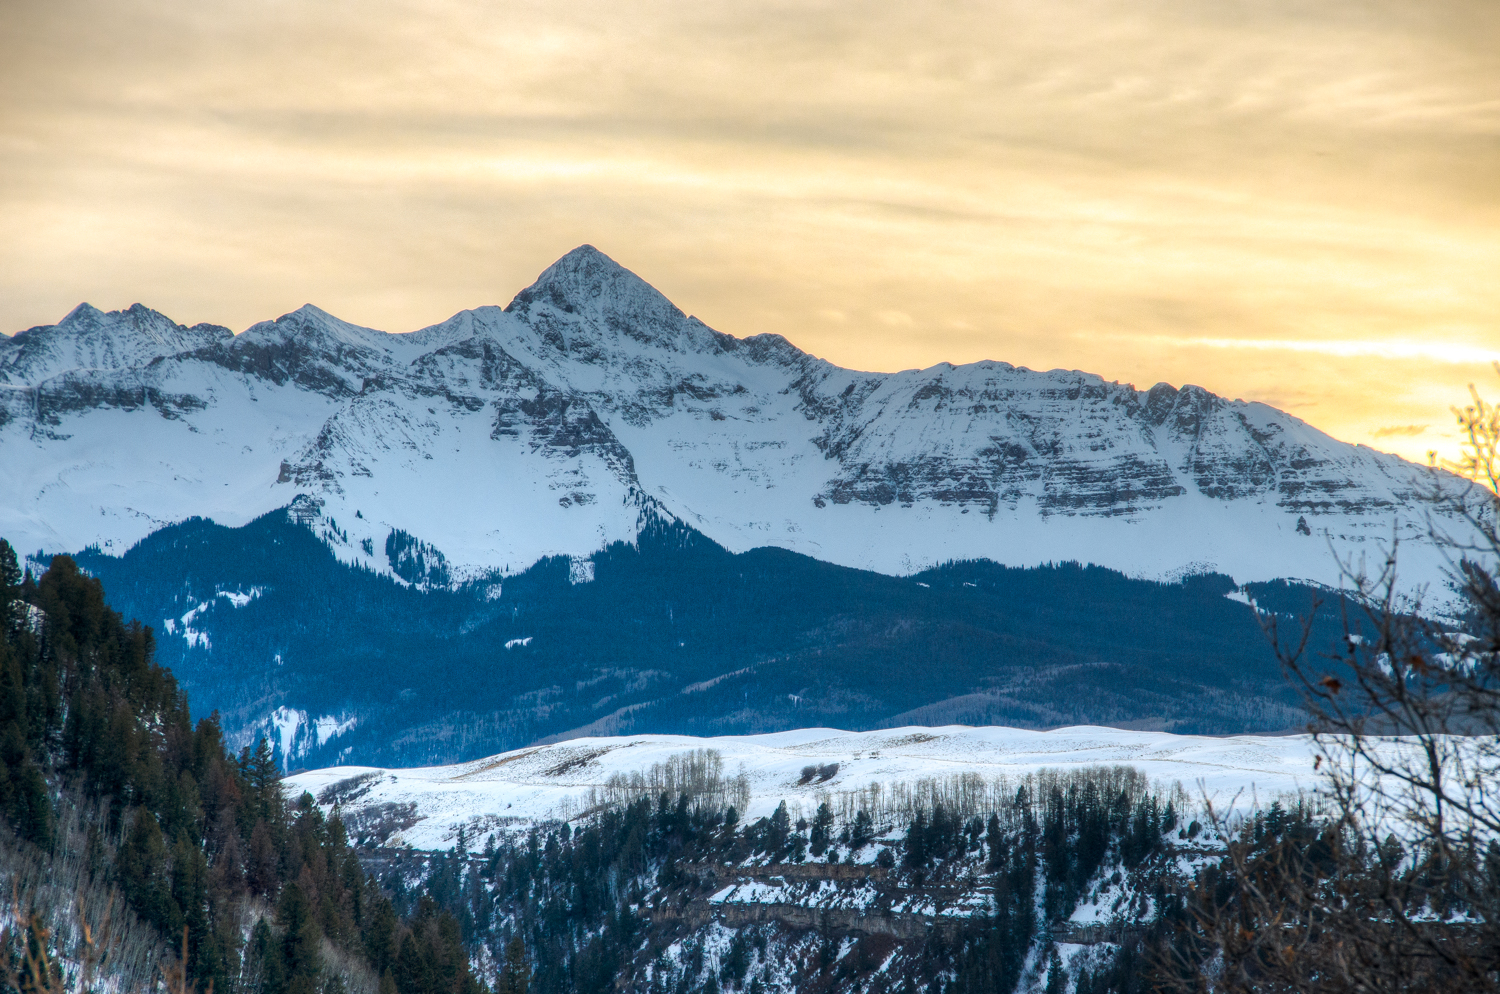 Beautiful View of the Snowy Mountains in Telluride